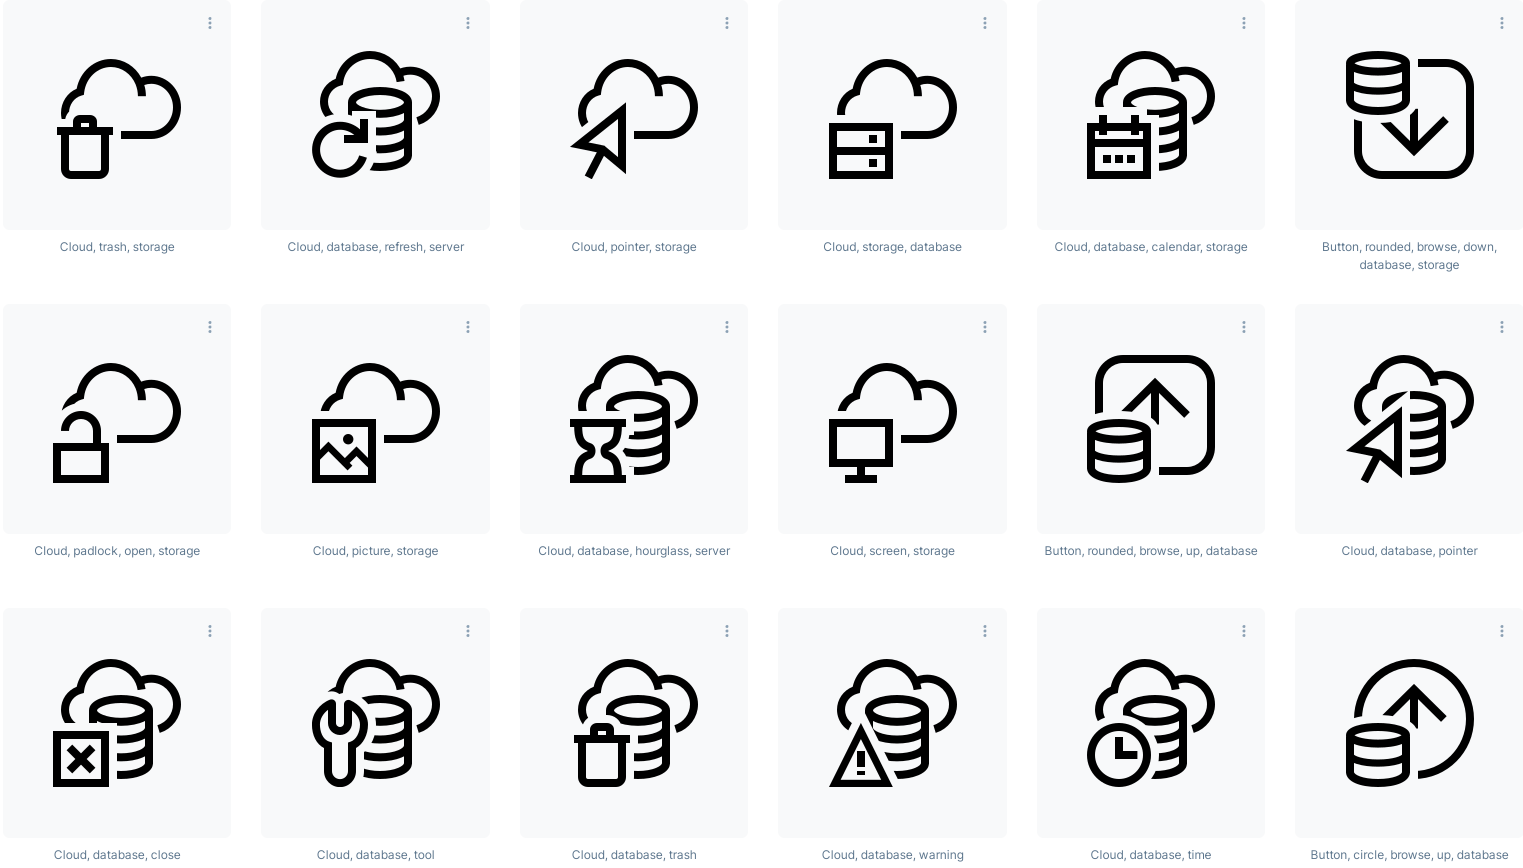 cloud icons in transparent backgrounds